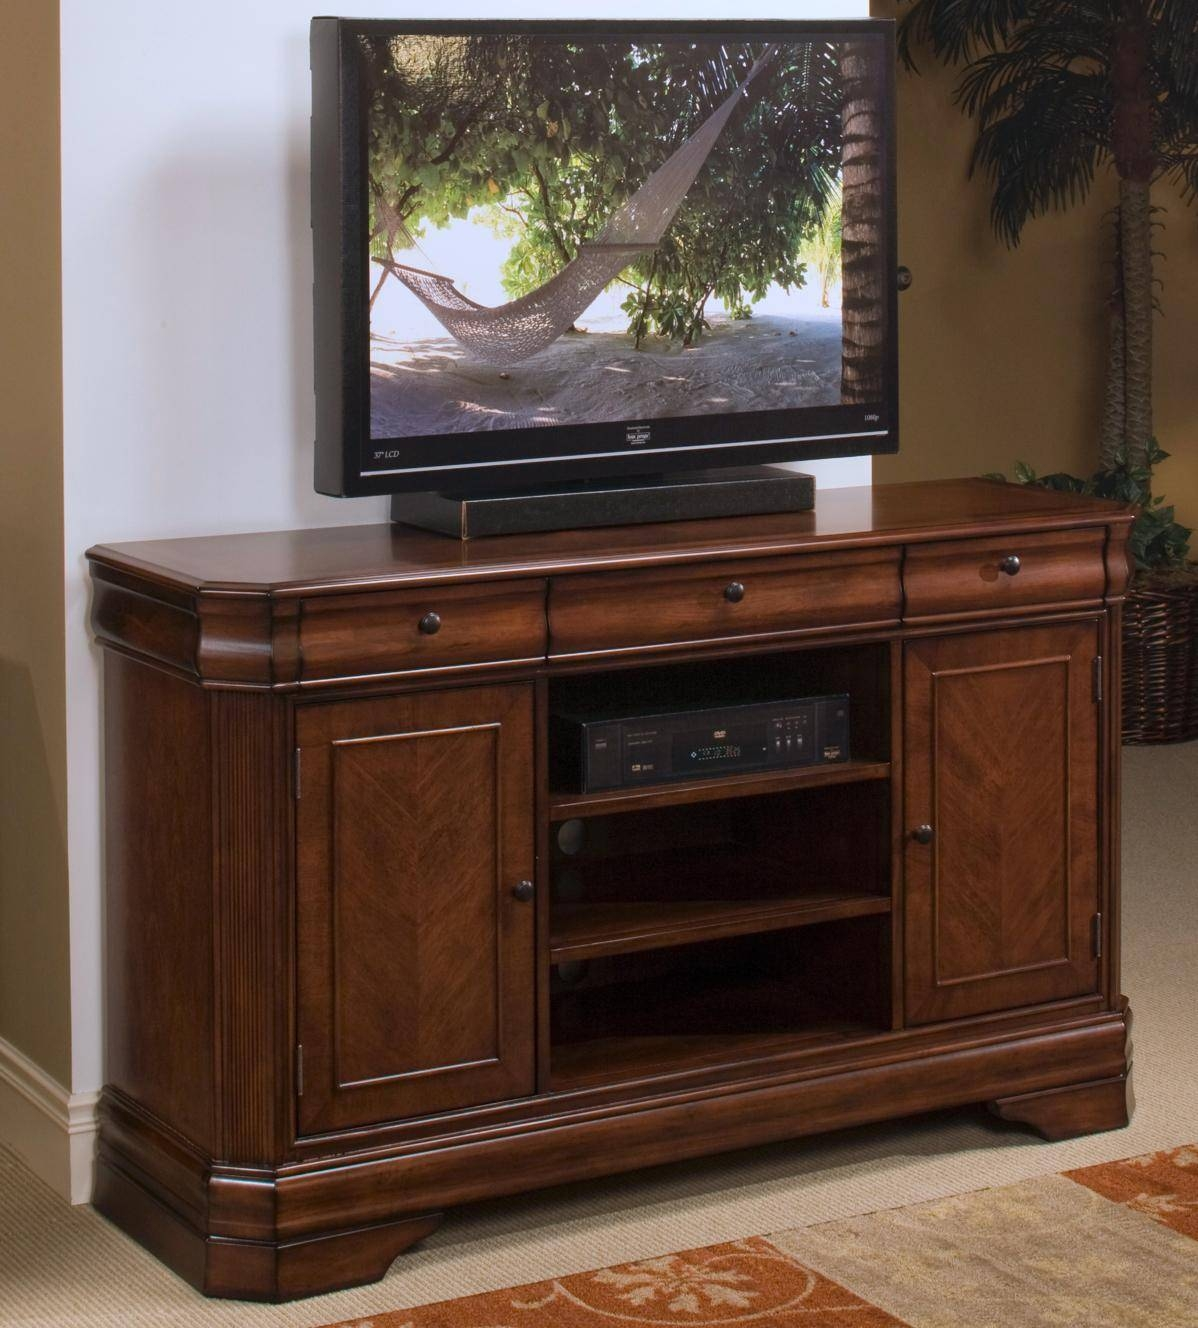 New Classic Sheridan Tv Entertainment Console - Great American throughout Classic Tv Stands (Image 10 of 15)